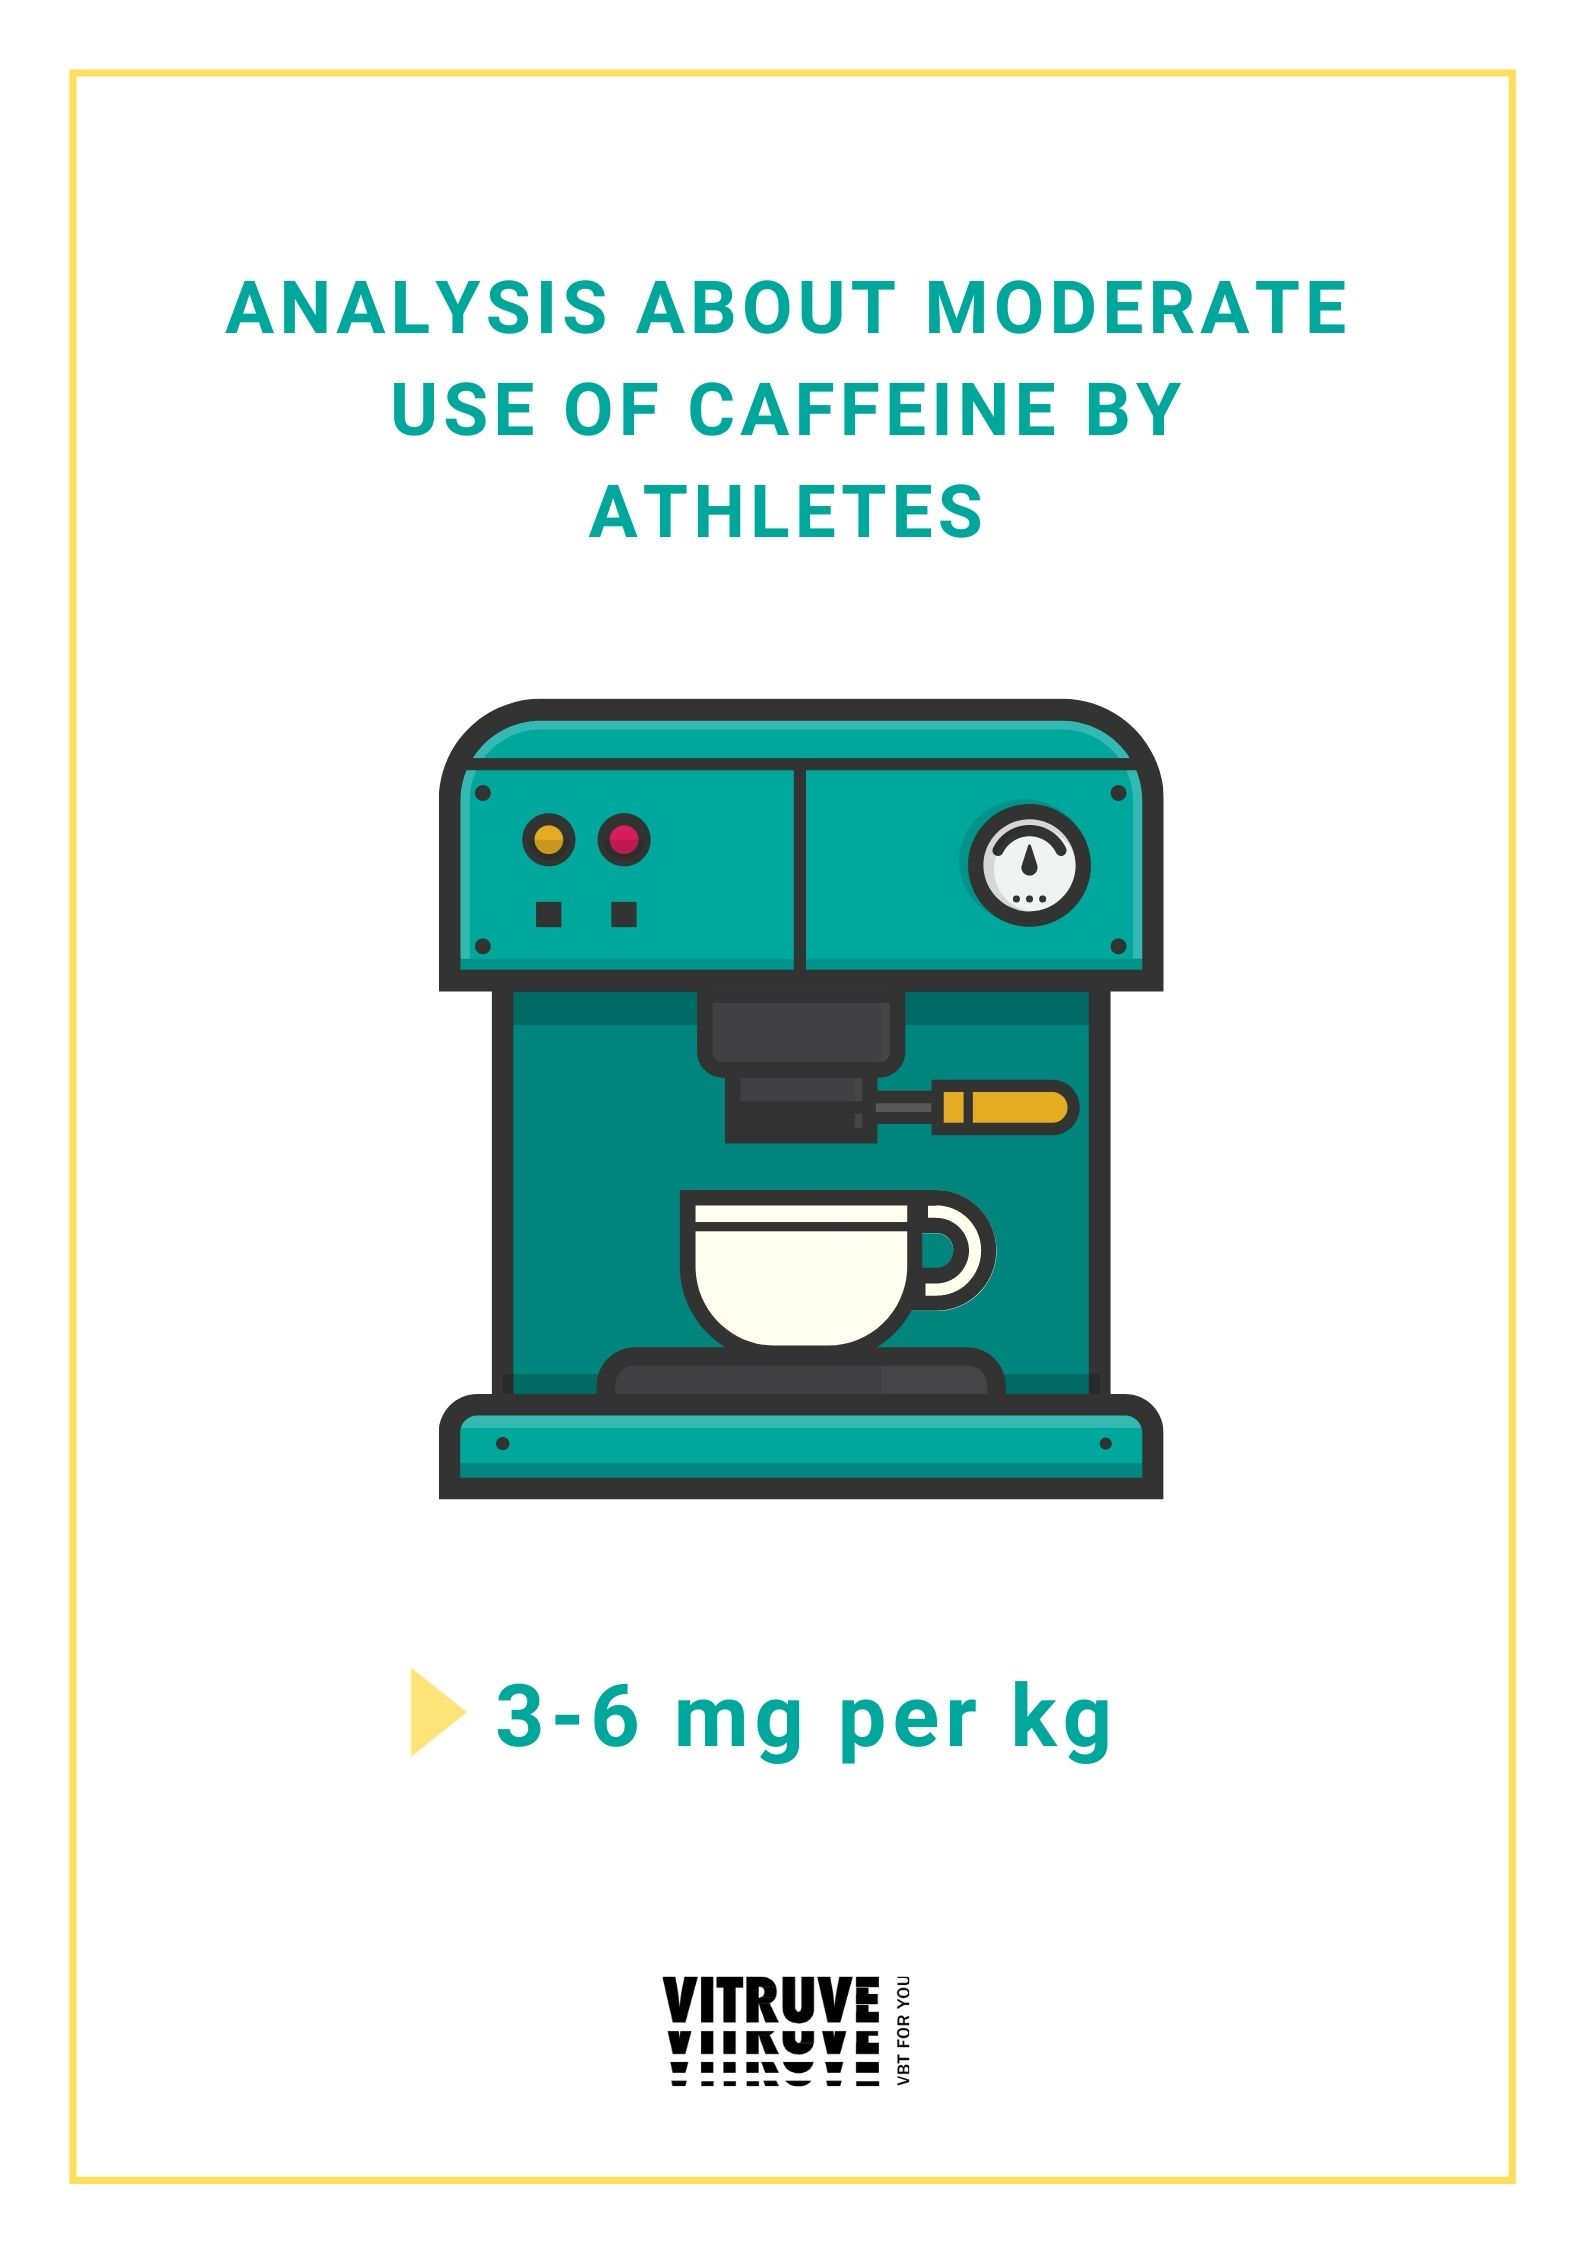 analysis-about-moderate-use-of-caffeine-by-athletes